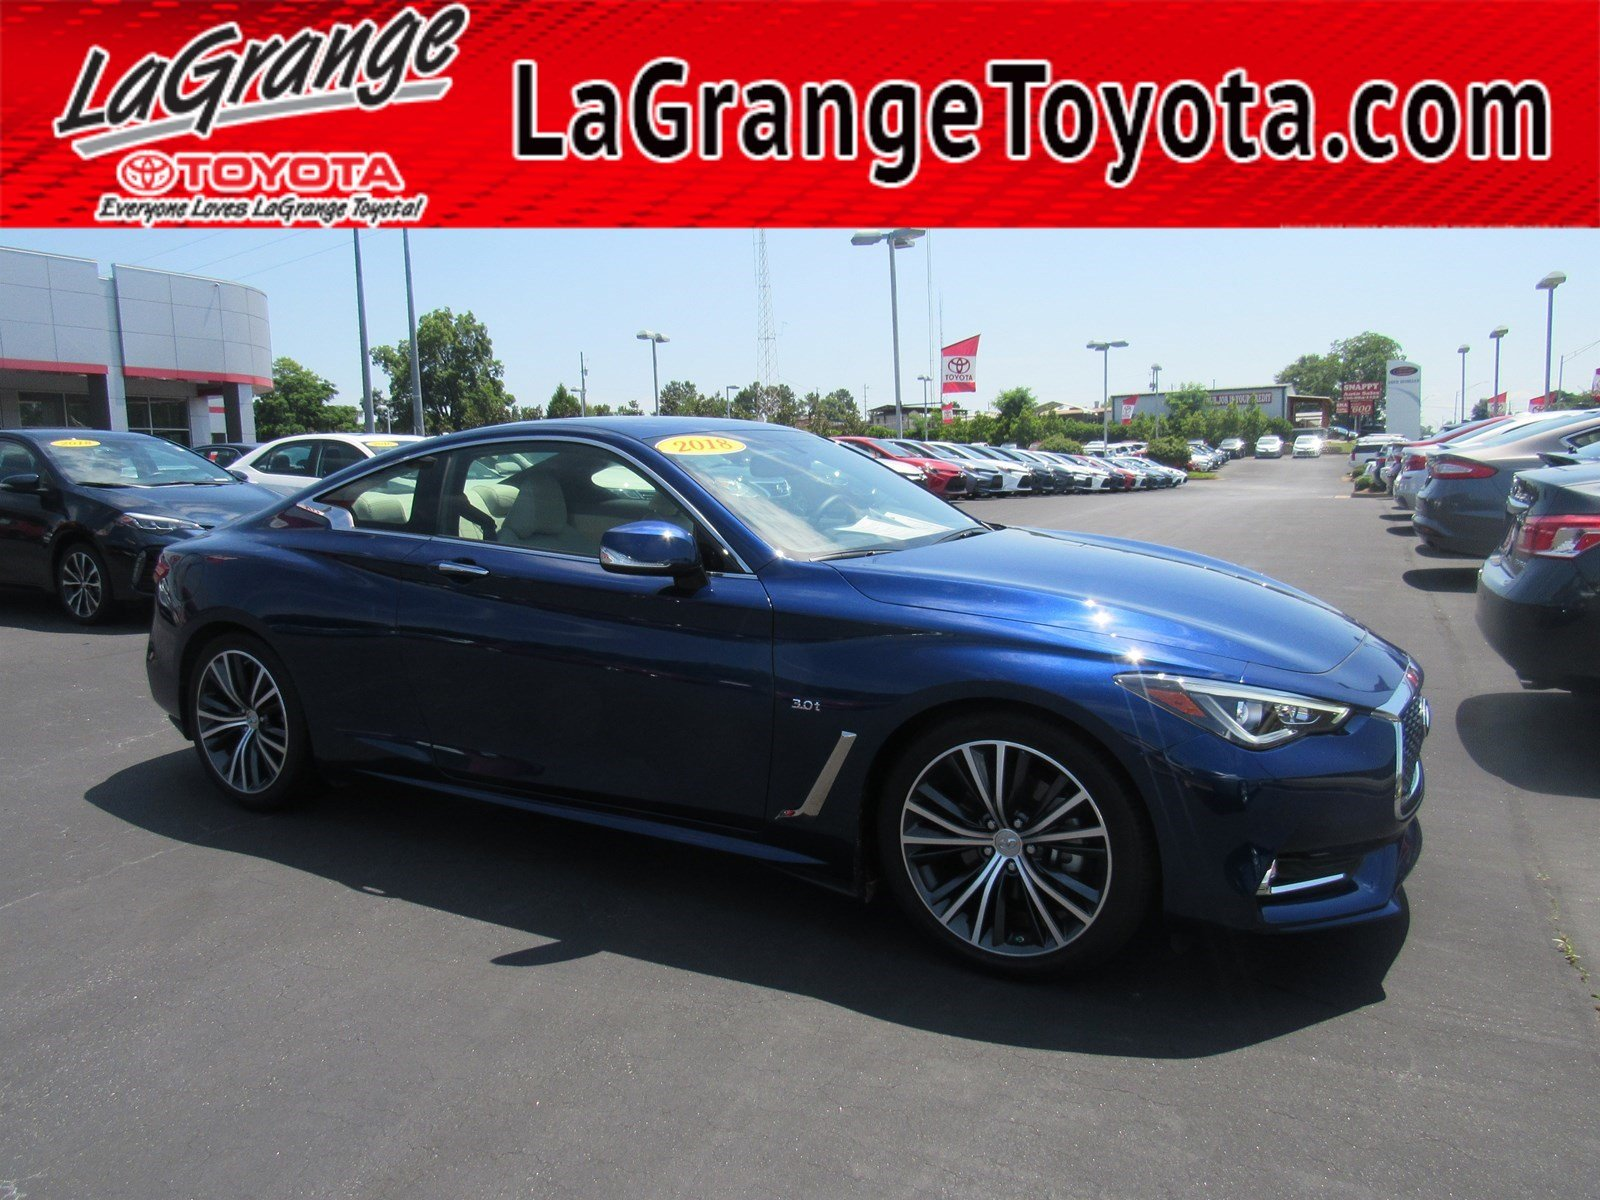 Pre-Owned 2018 INFINITI Q60 3.0t LUXE RWD